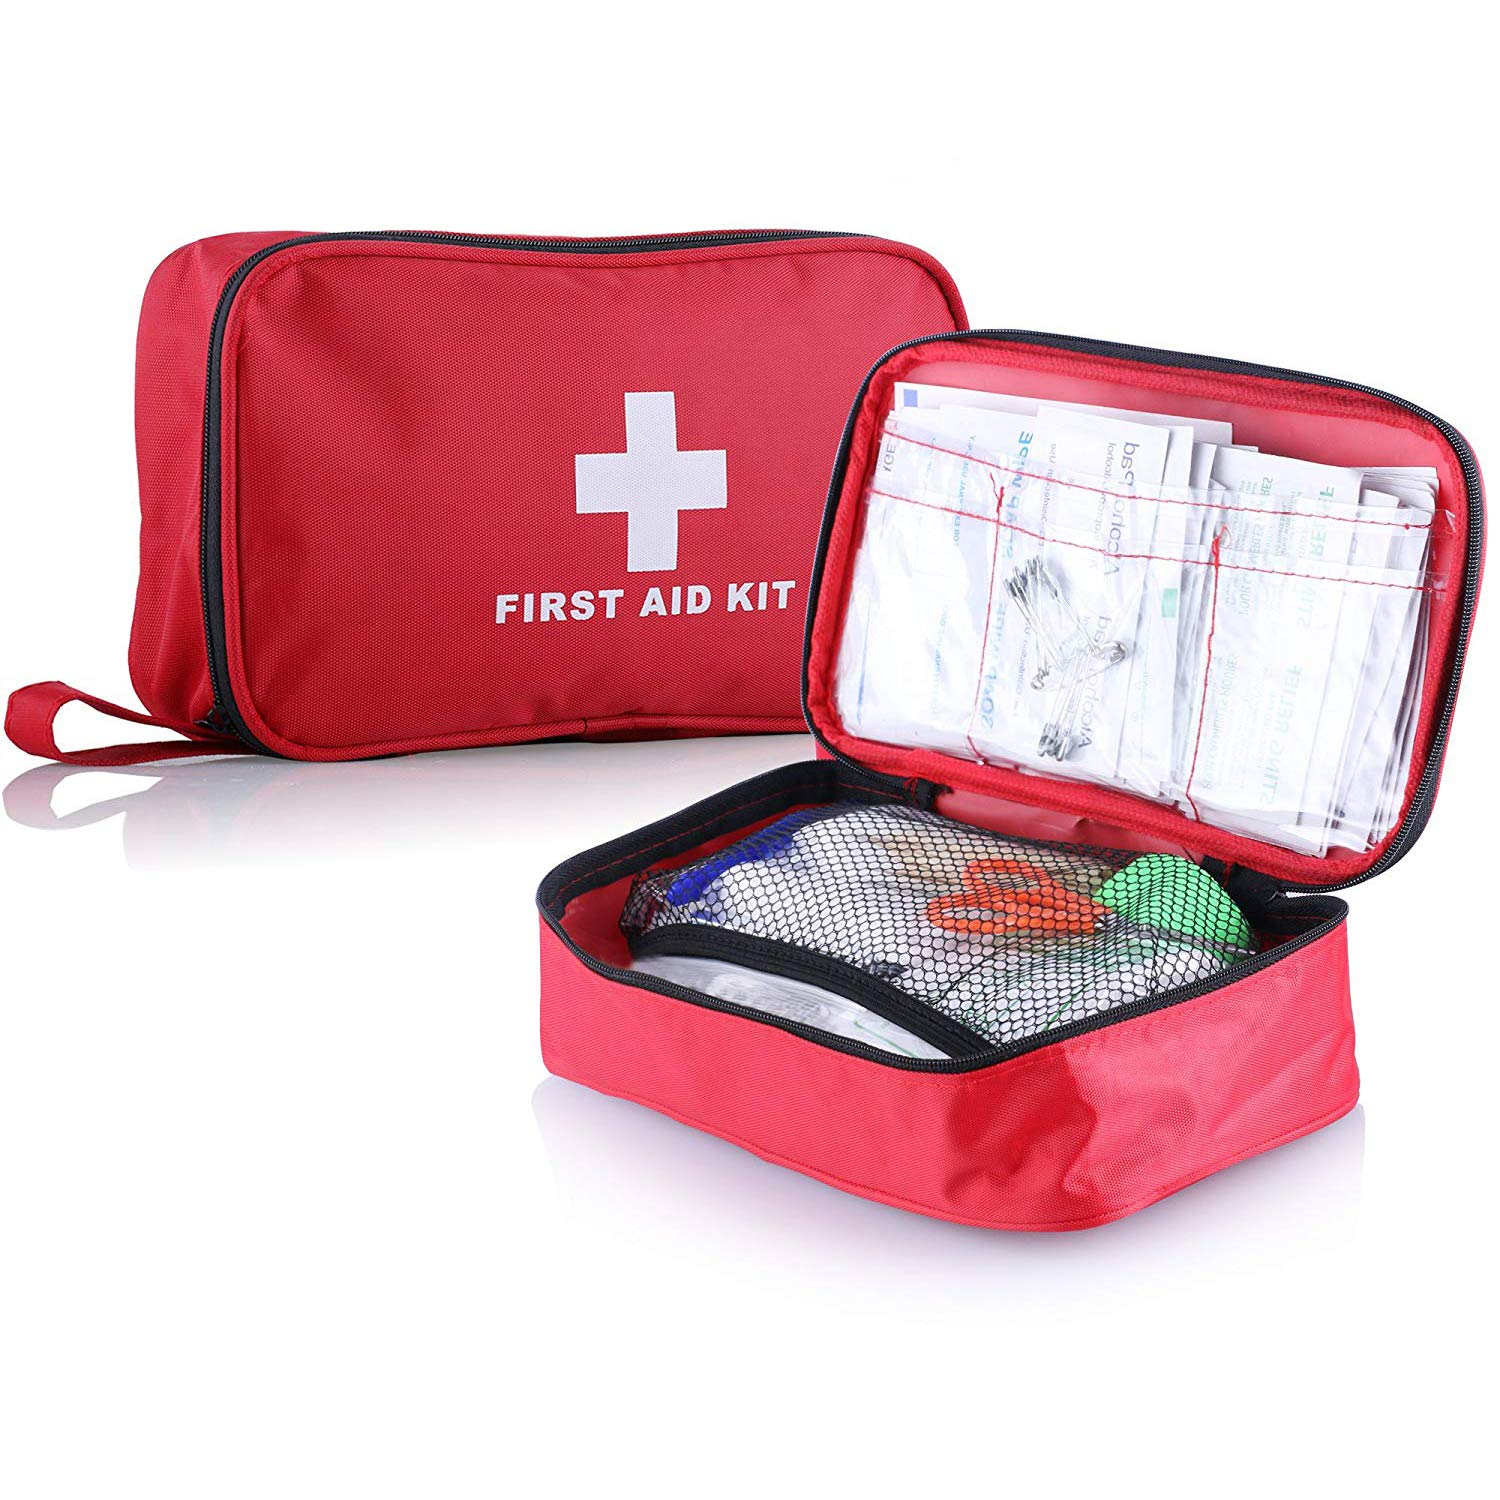 First Aid Kit (139 Piece) Mini First Aid Bag with high Quality Medical Supplies Compact for Emergency at Home, Outdoors, Car, Camping, Workplace, Hiking & Survival